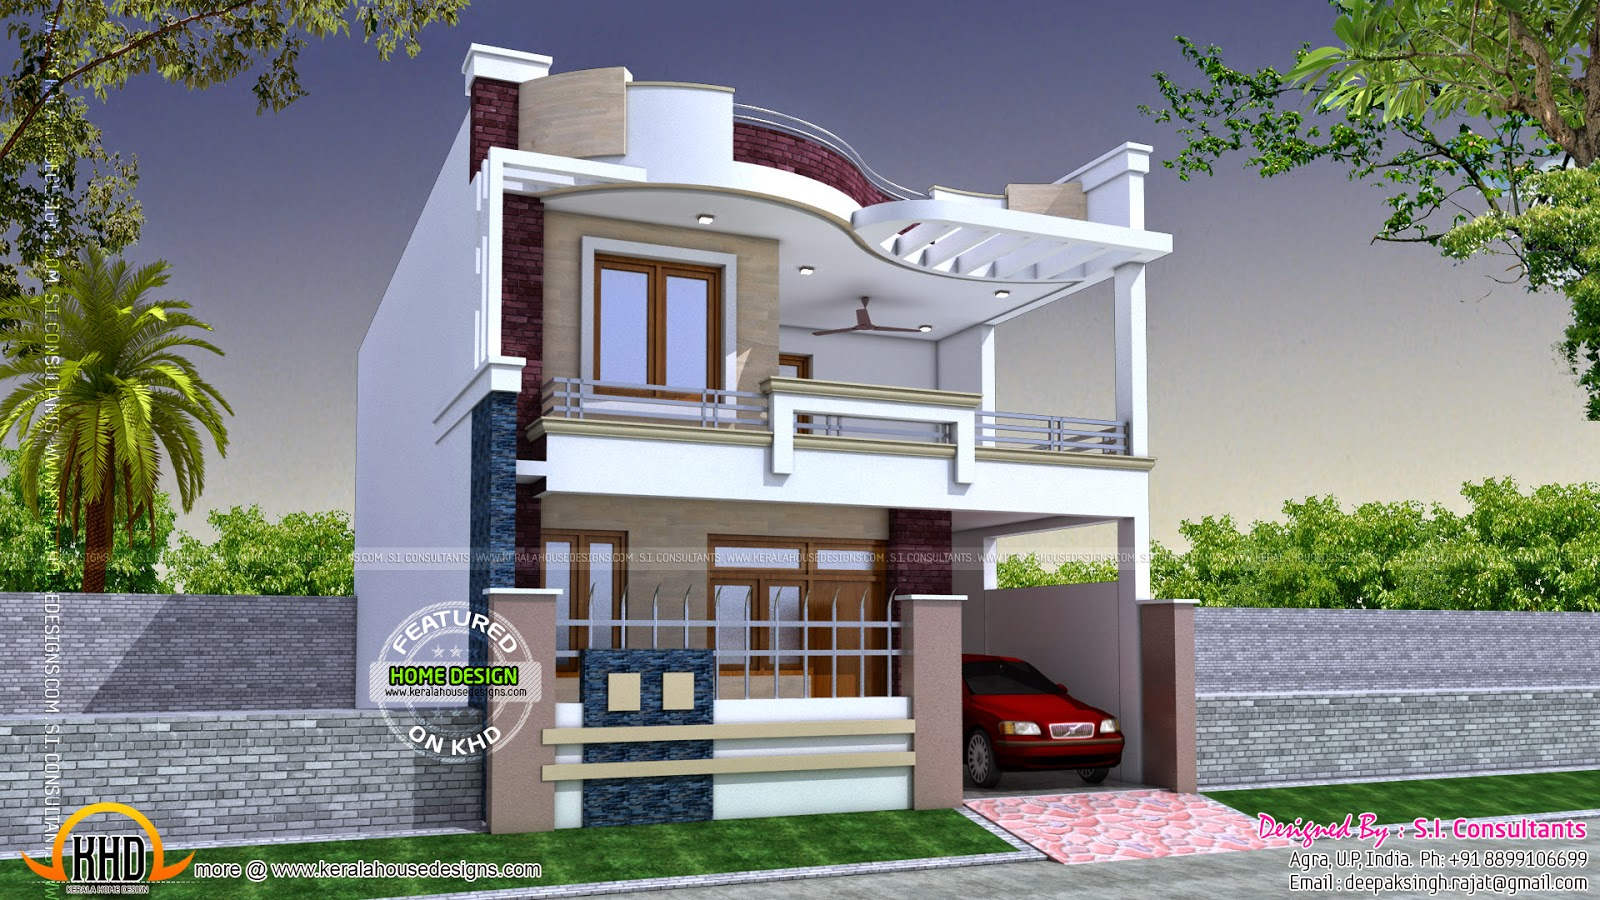 Modern indian home design kerala home design and floor plans for Indian house floor plans free